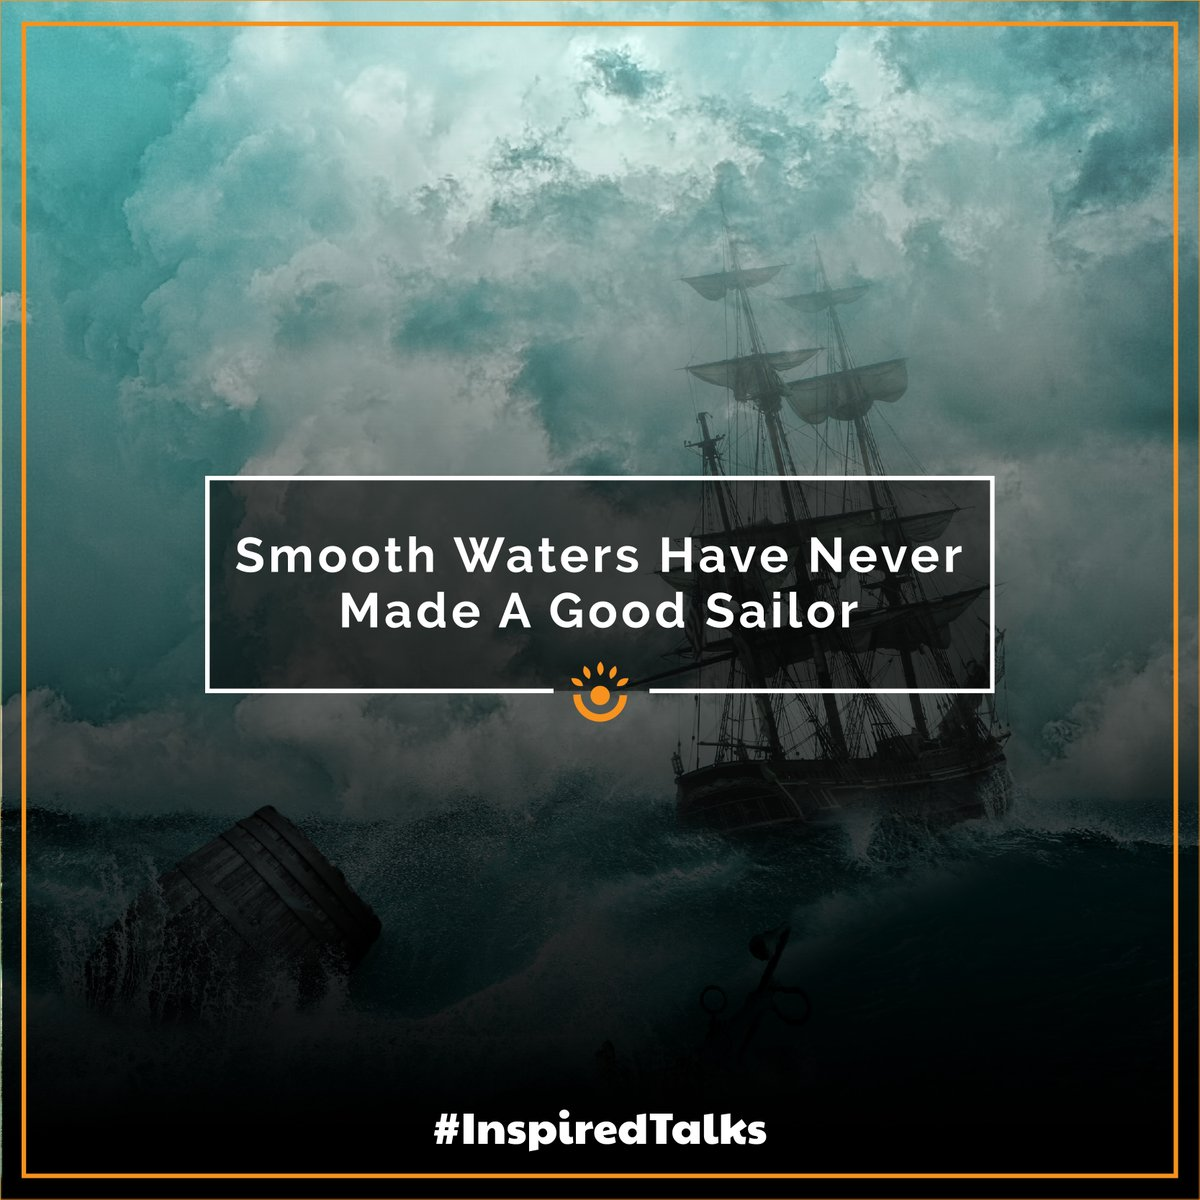 Smooth waters have made a good sailor. Follow us for your #dailymotivation..#inspiredtalk #success #dream #achievers #life #inspiration #work #words #win #confident #hardwork #business #entrepreneur